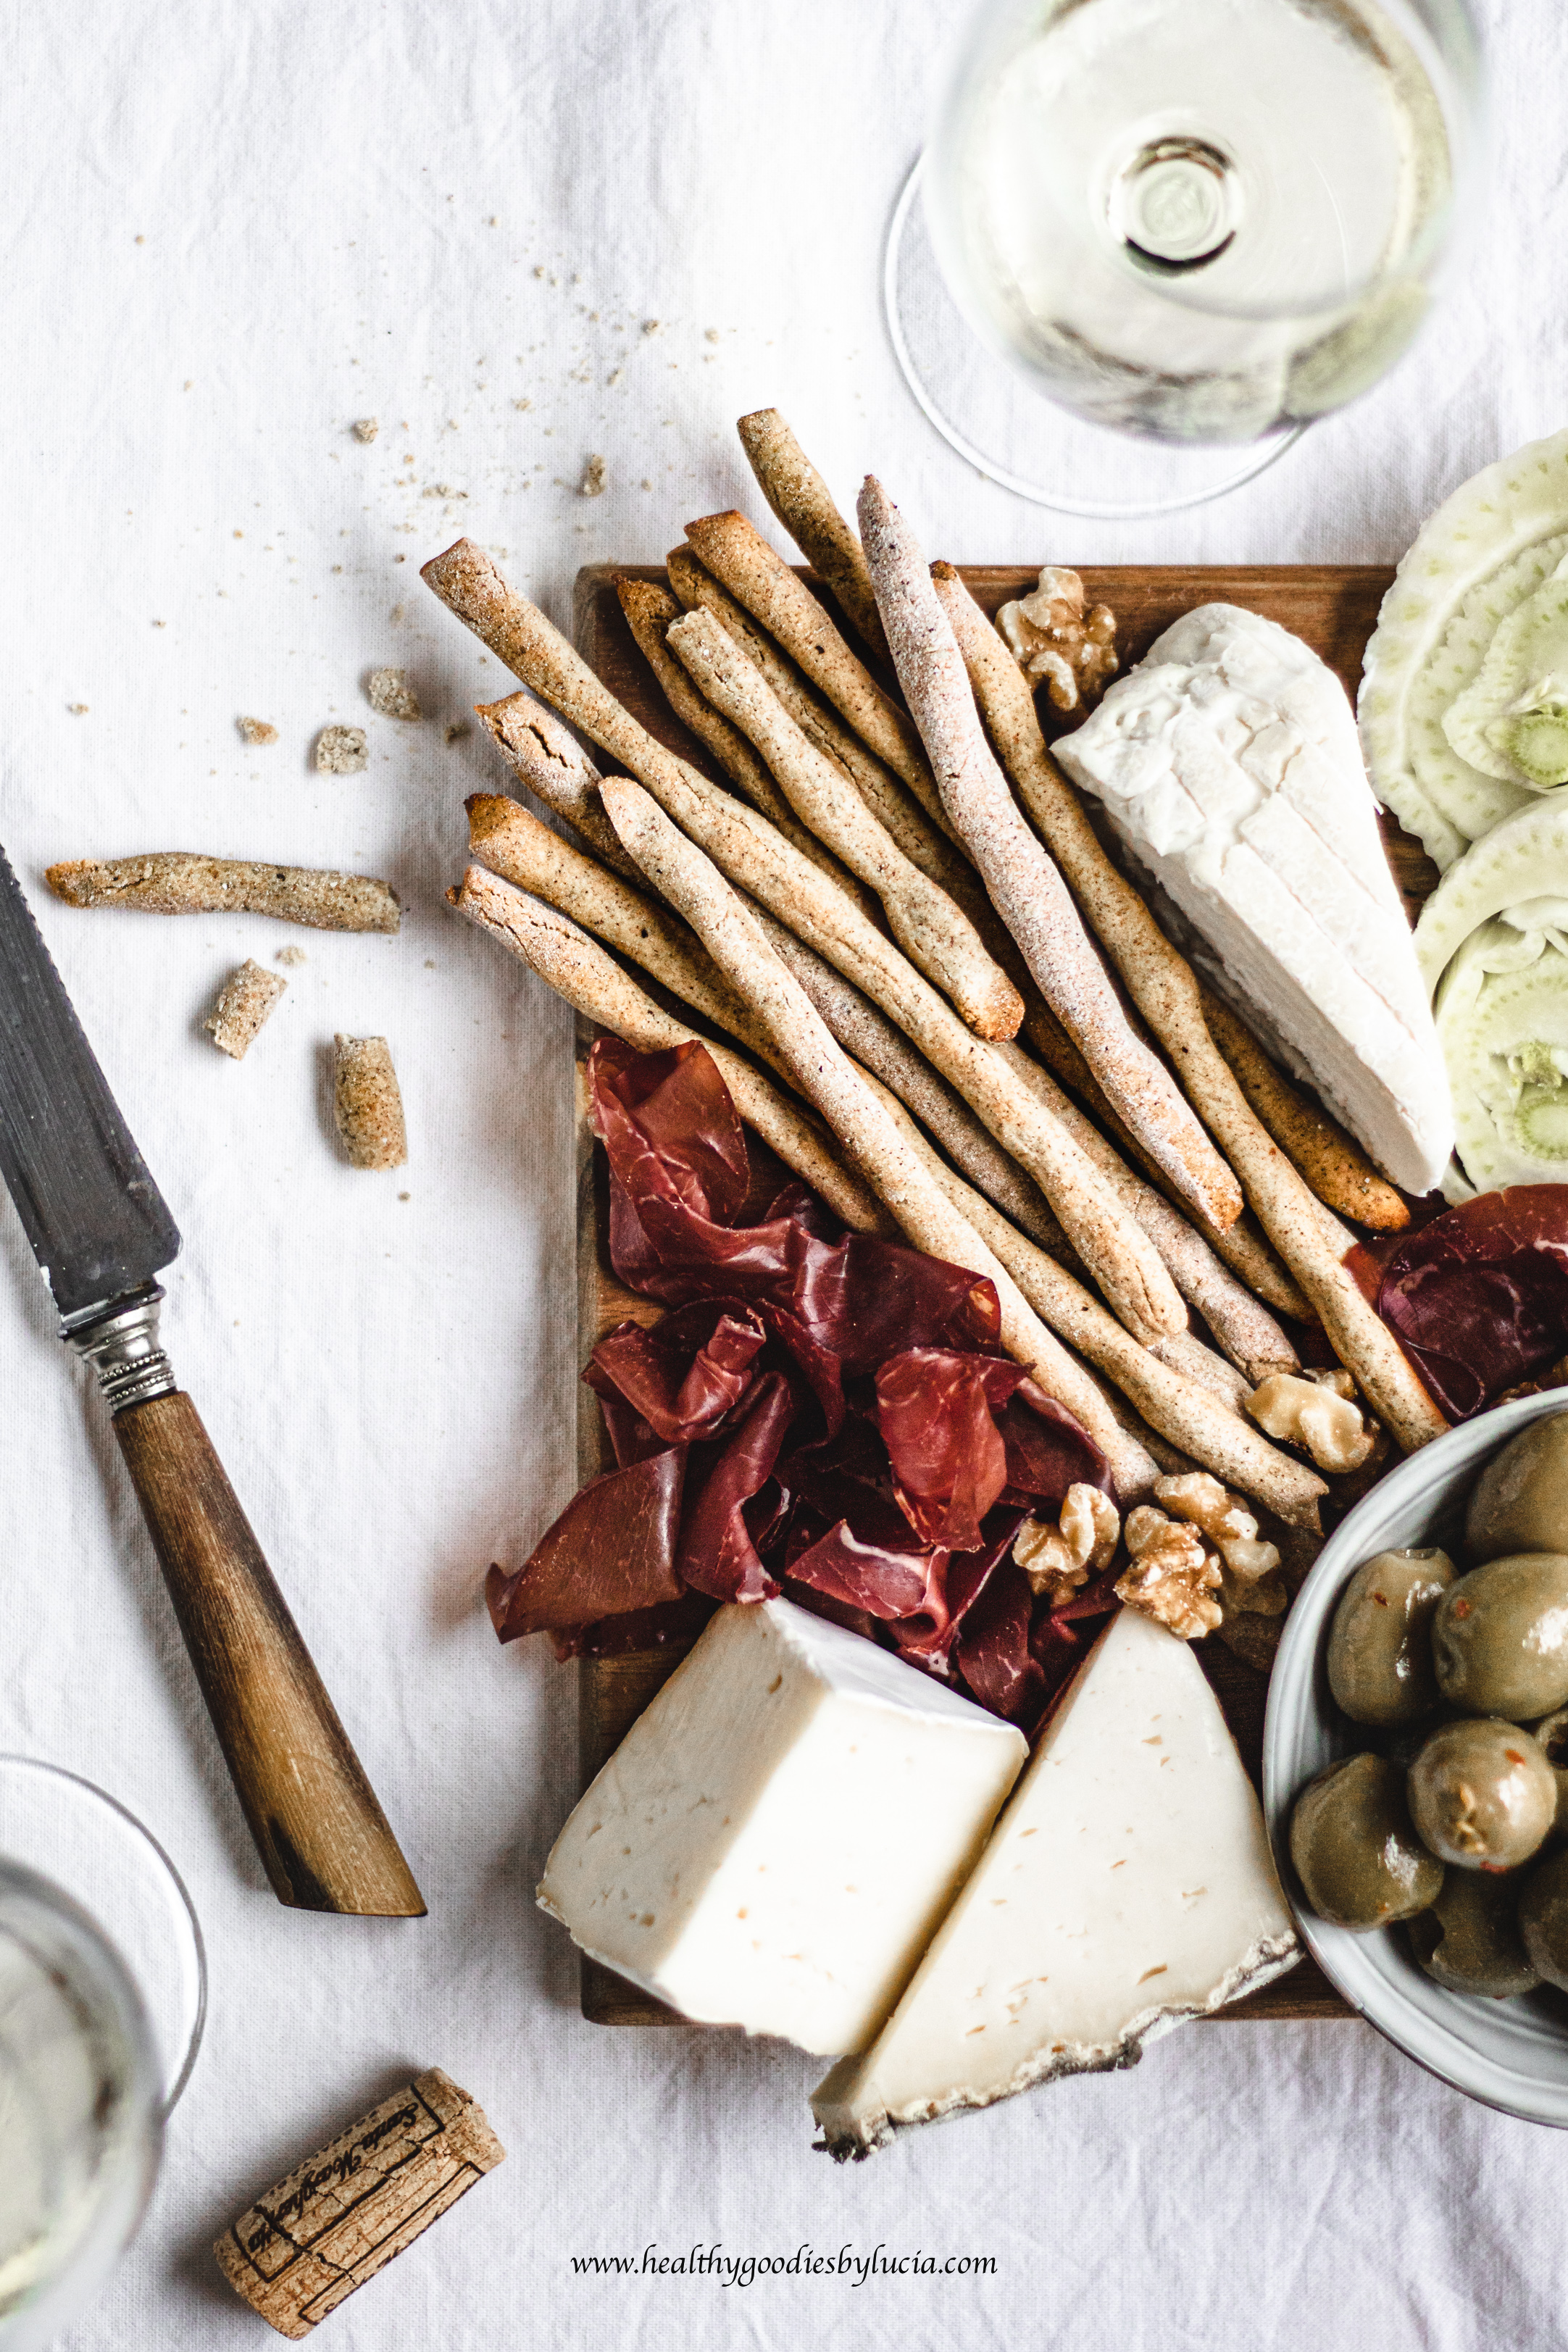 luten-free Grissini Breadsticks | Healthy Goodies by Lucia